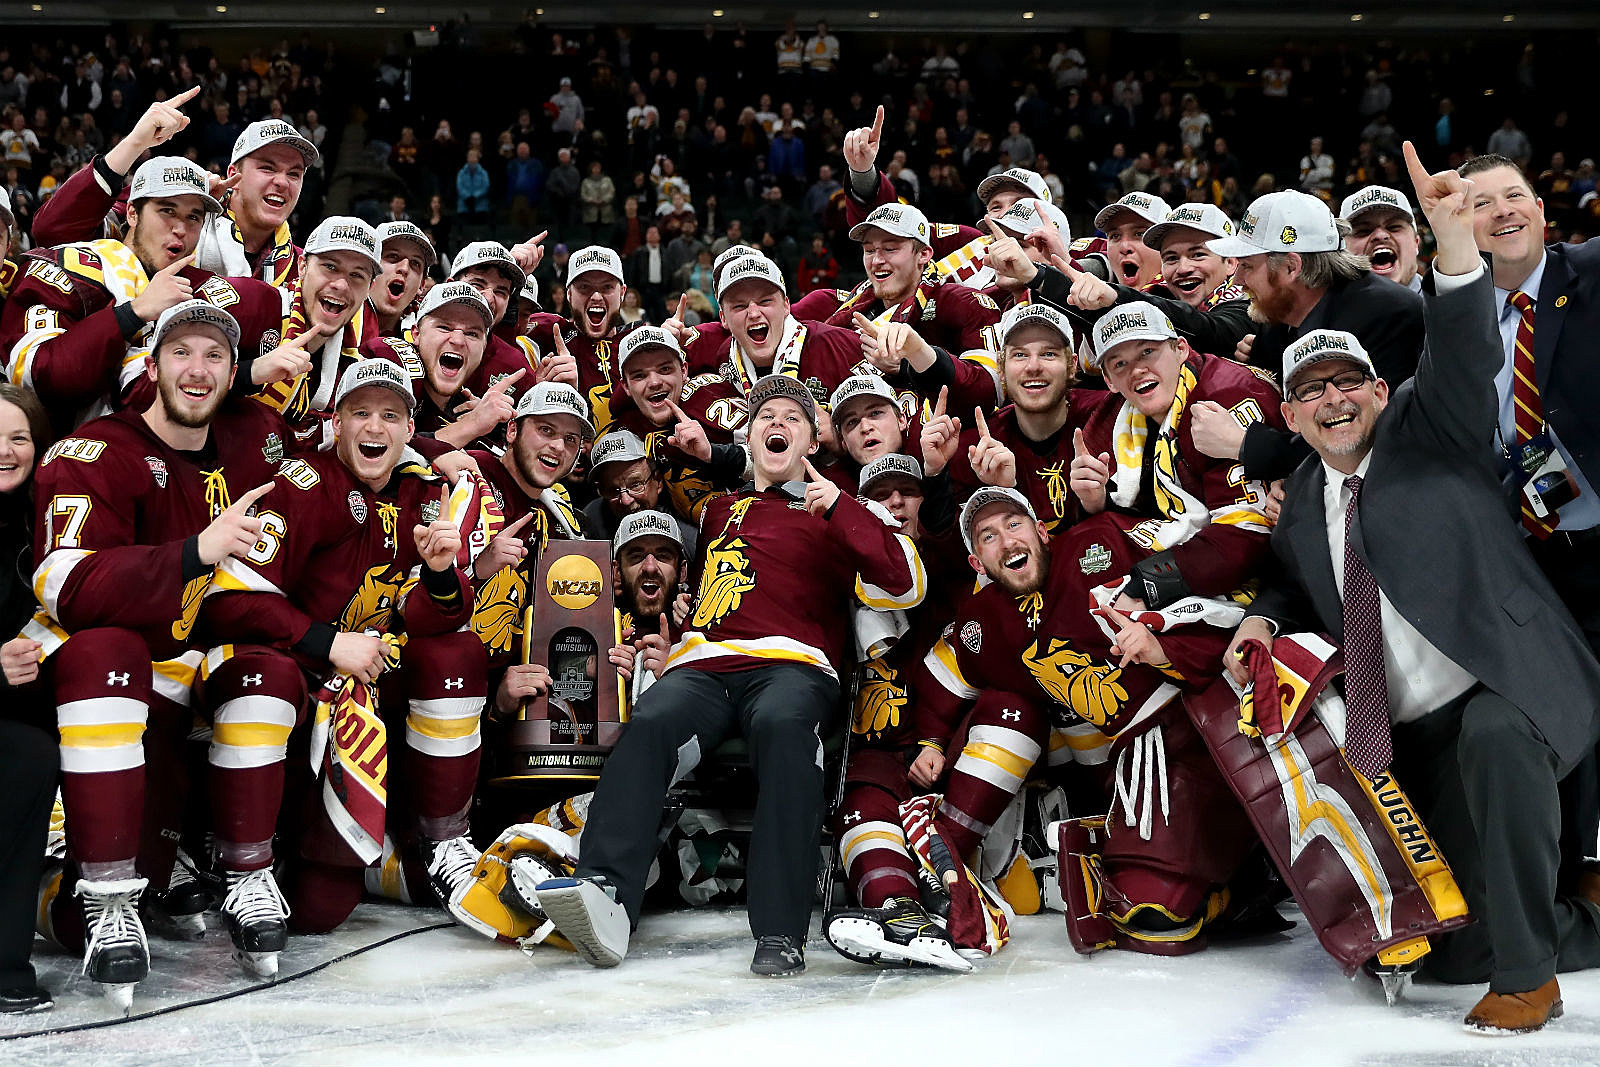 national champs hockey.jpg